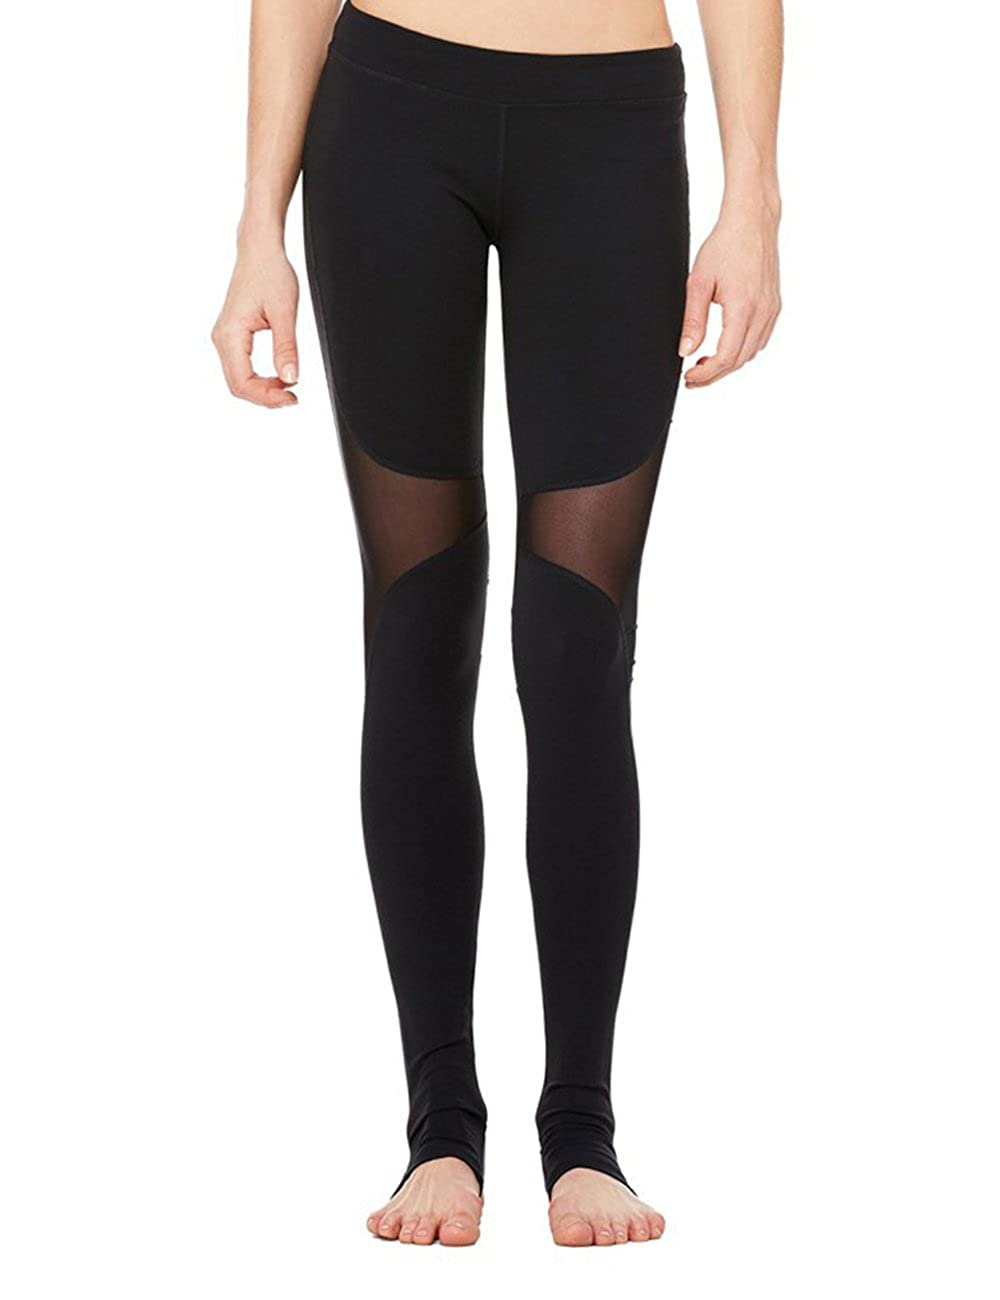 6445649a0 100% MONEY BACK GUARANTEE - Your satisfaction is our priority. In the event  that our yoga pant doesn t meet all your needs